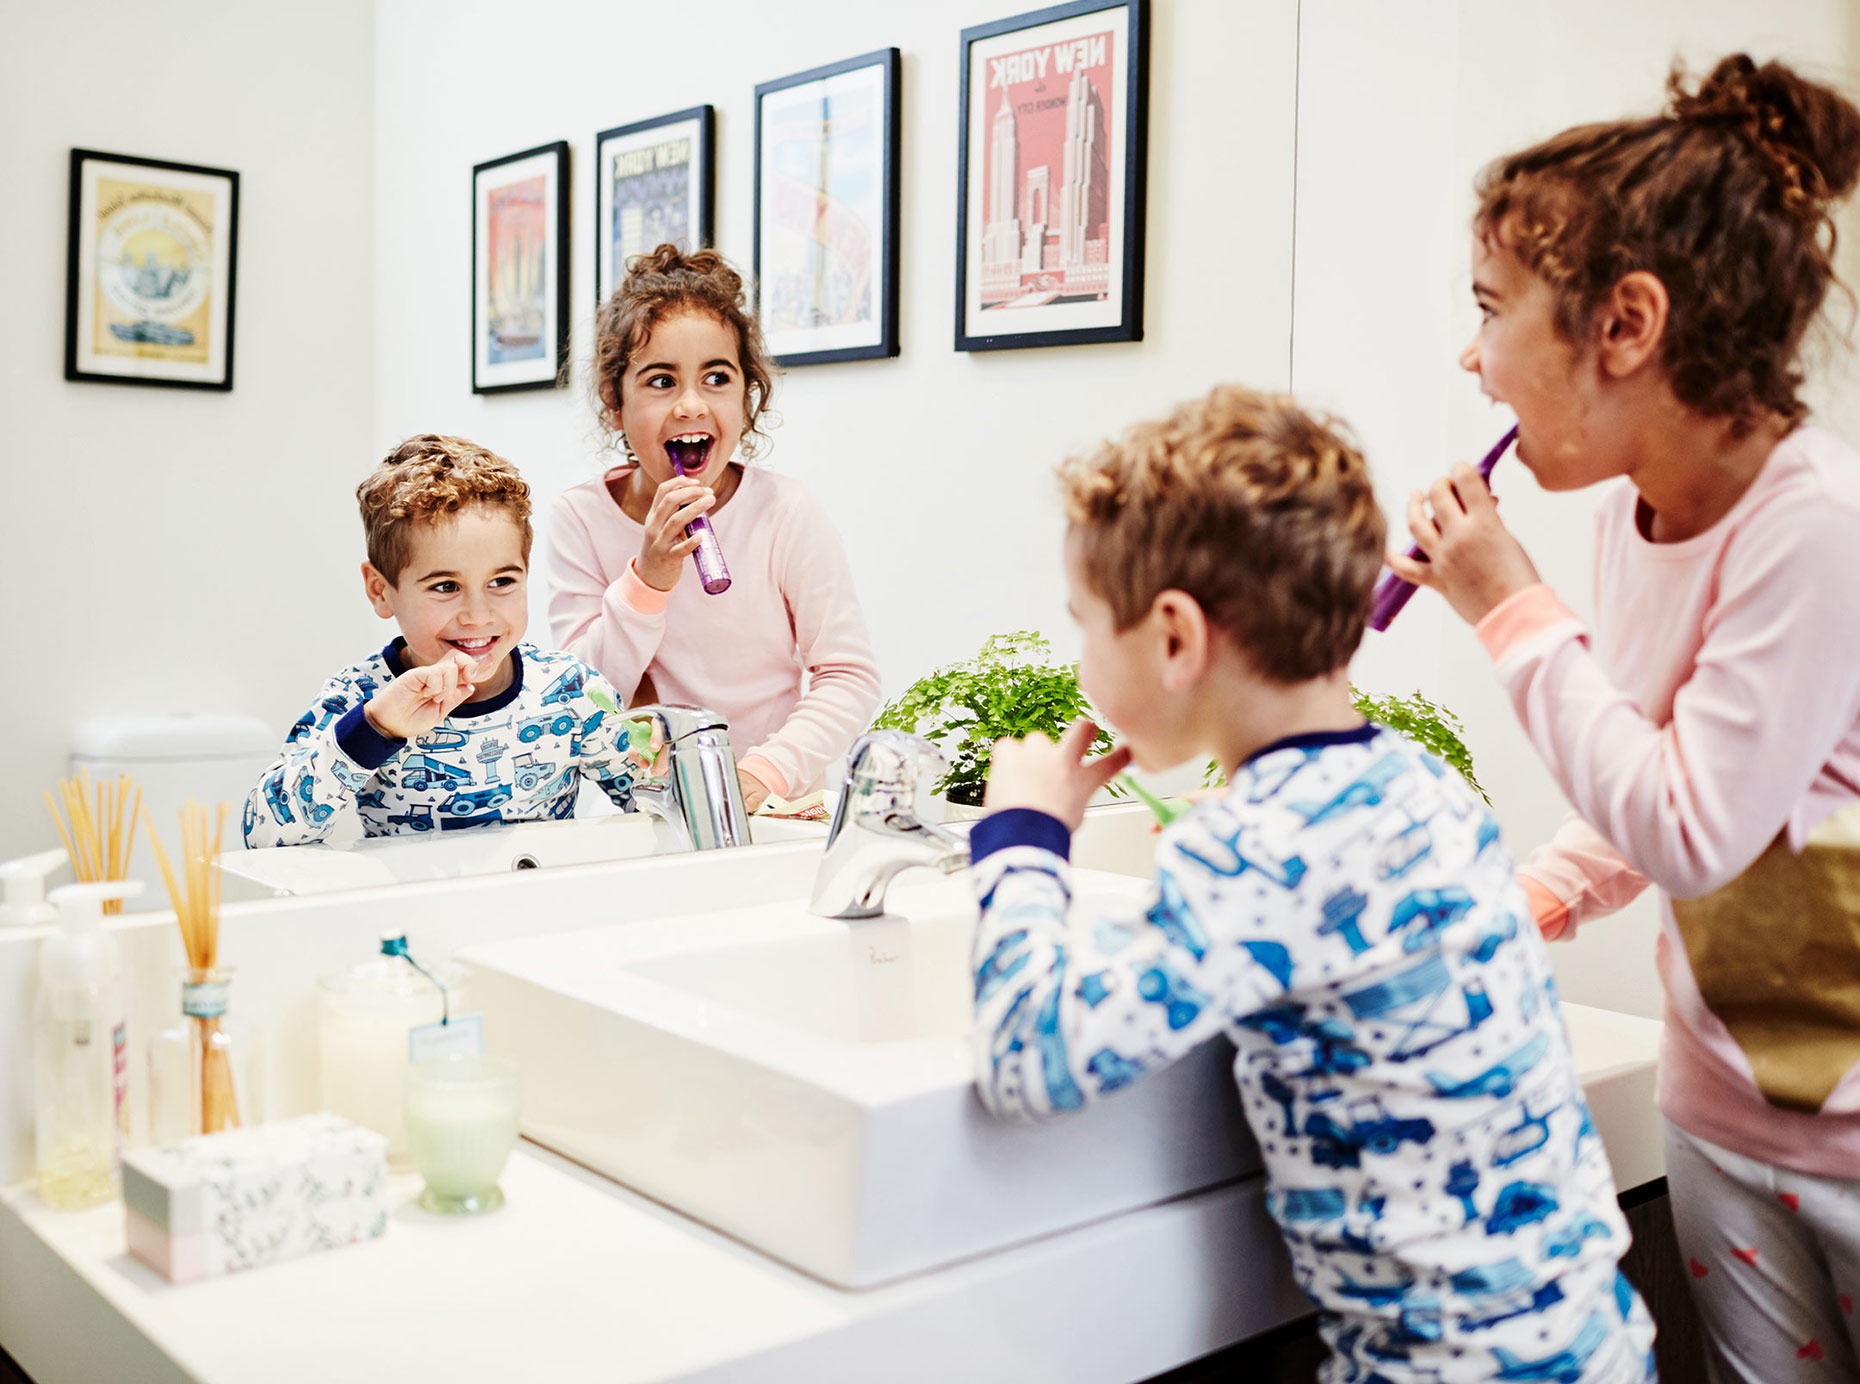 Kids brushing teeth in front of bathroom mirror